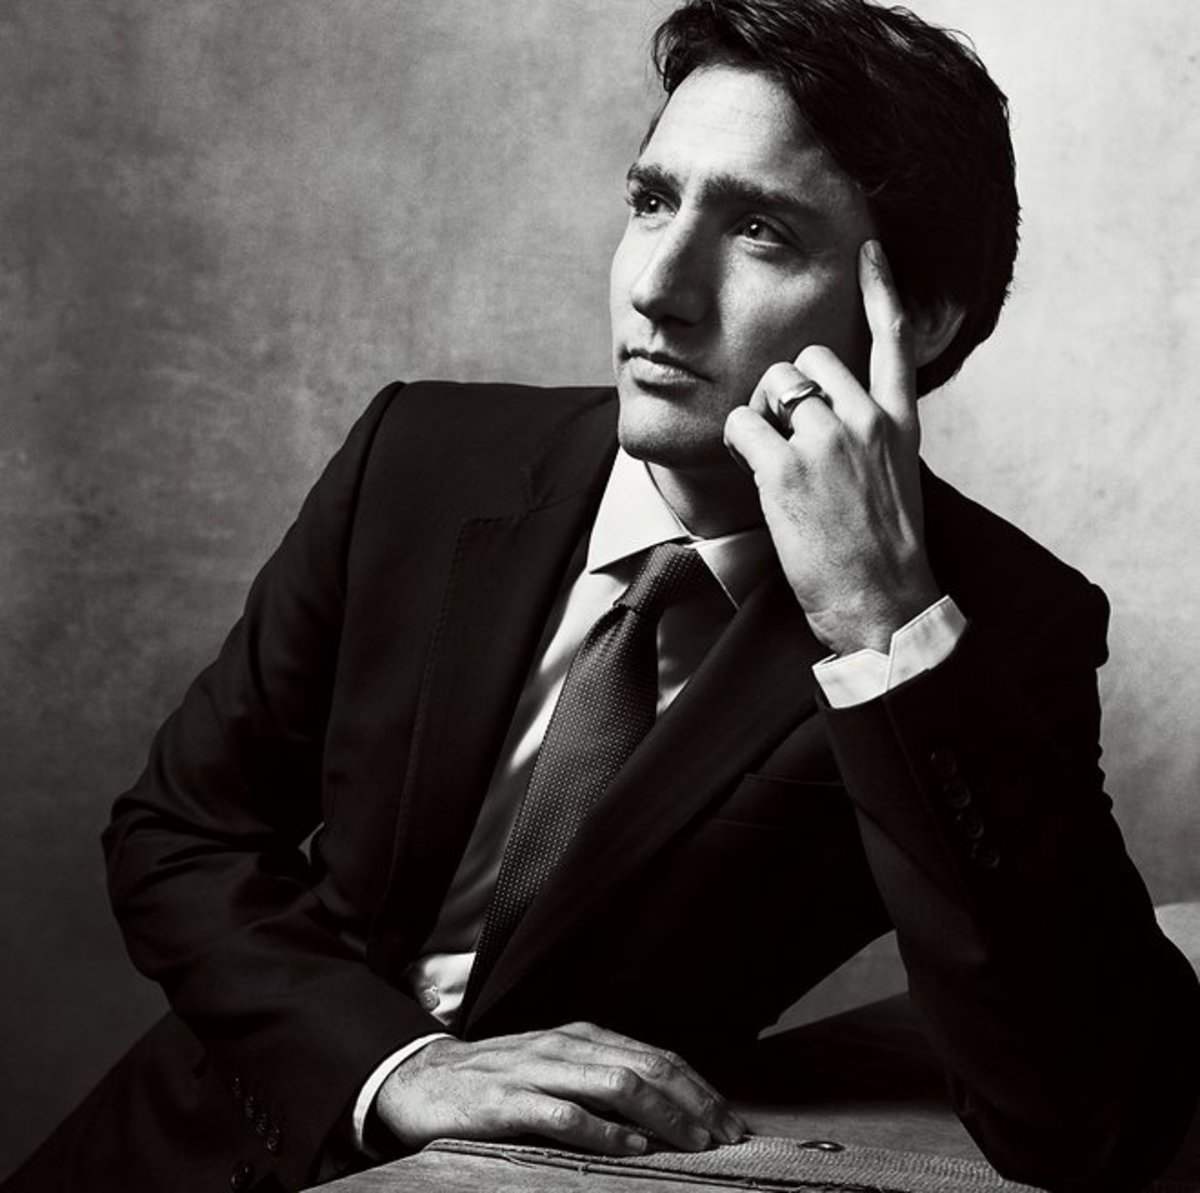 the photogenic Prime Minister in a Vogue fashion shot